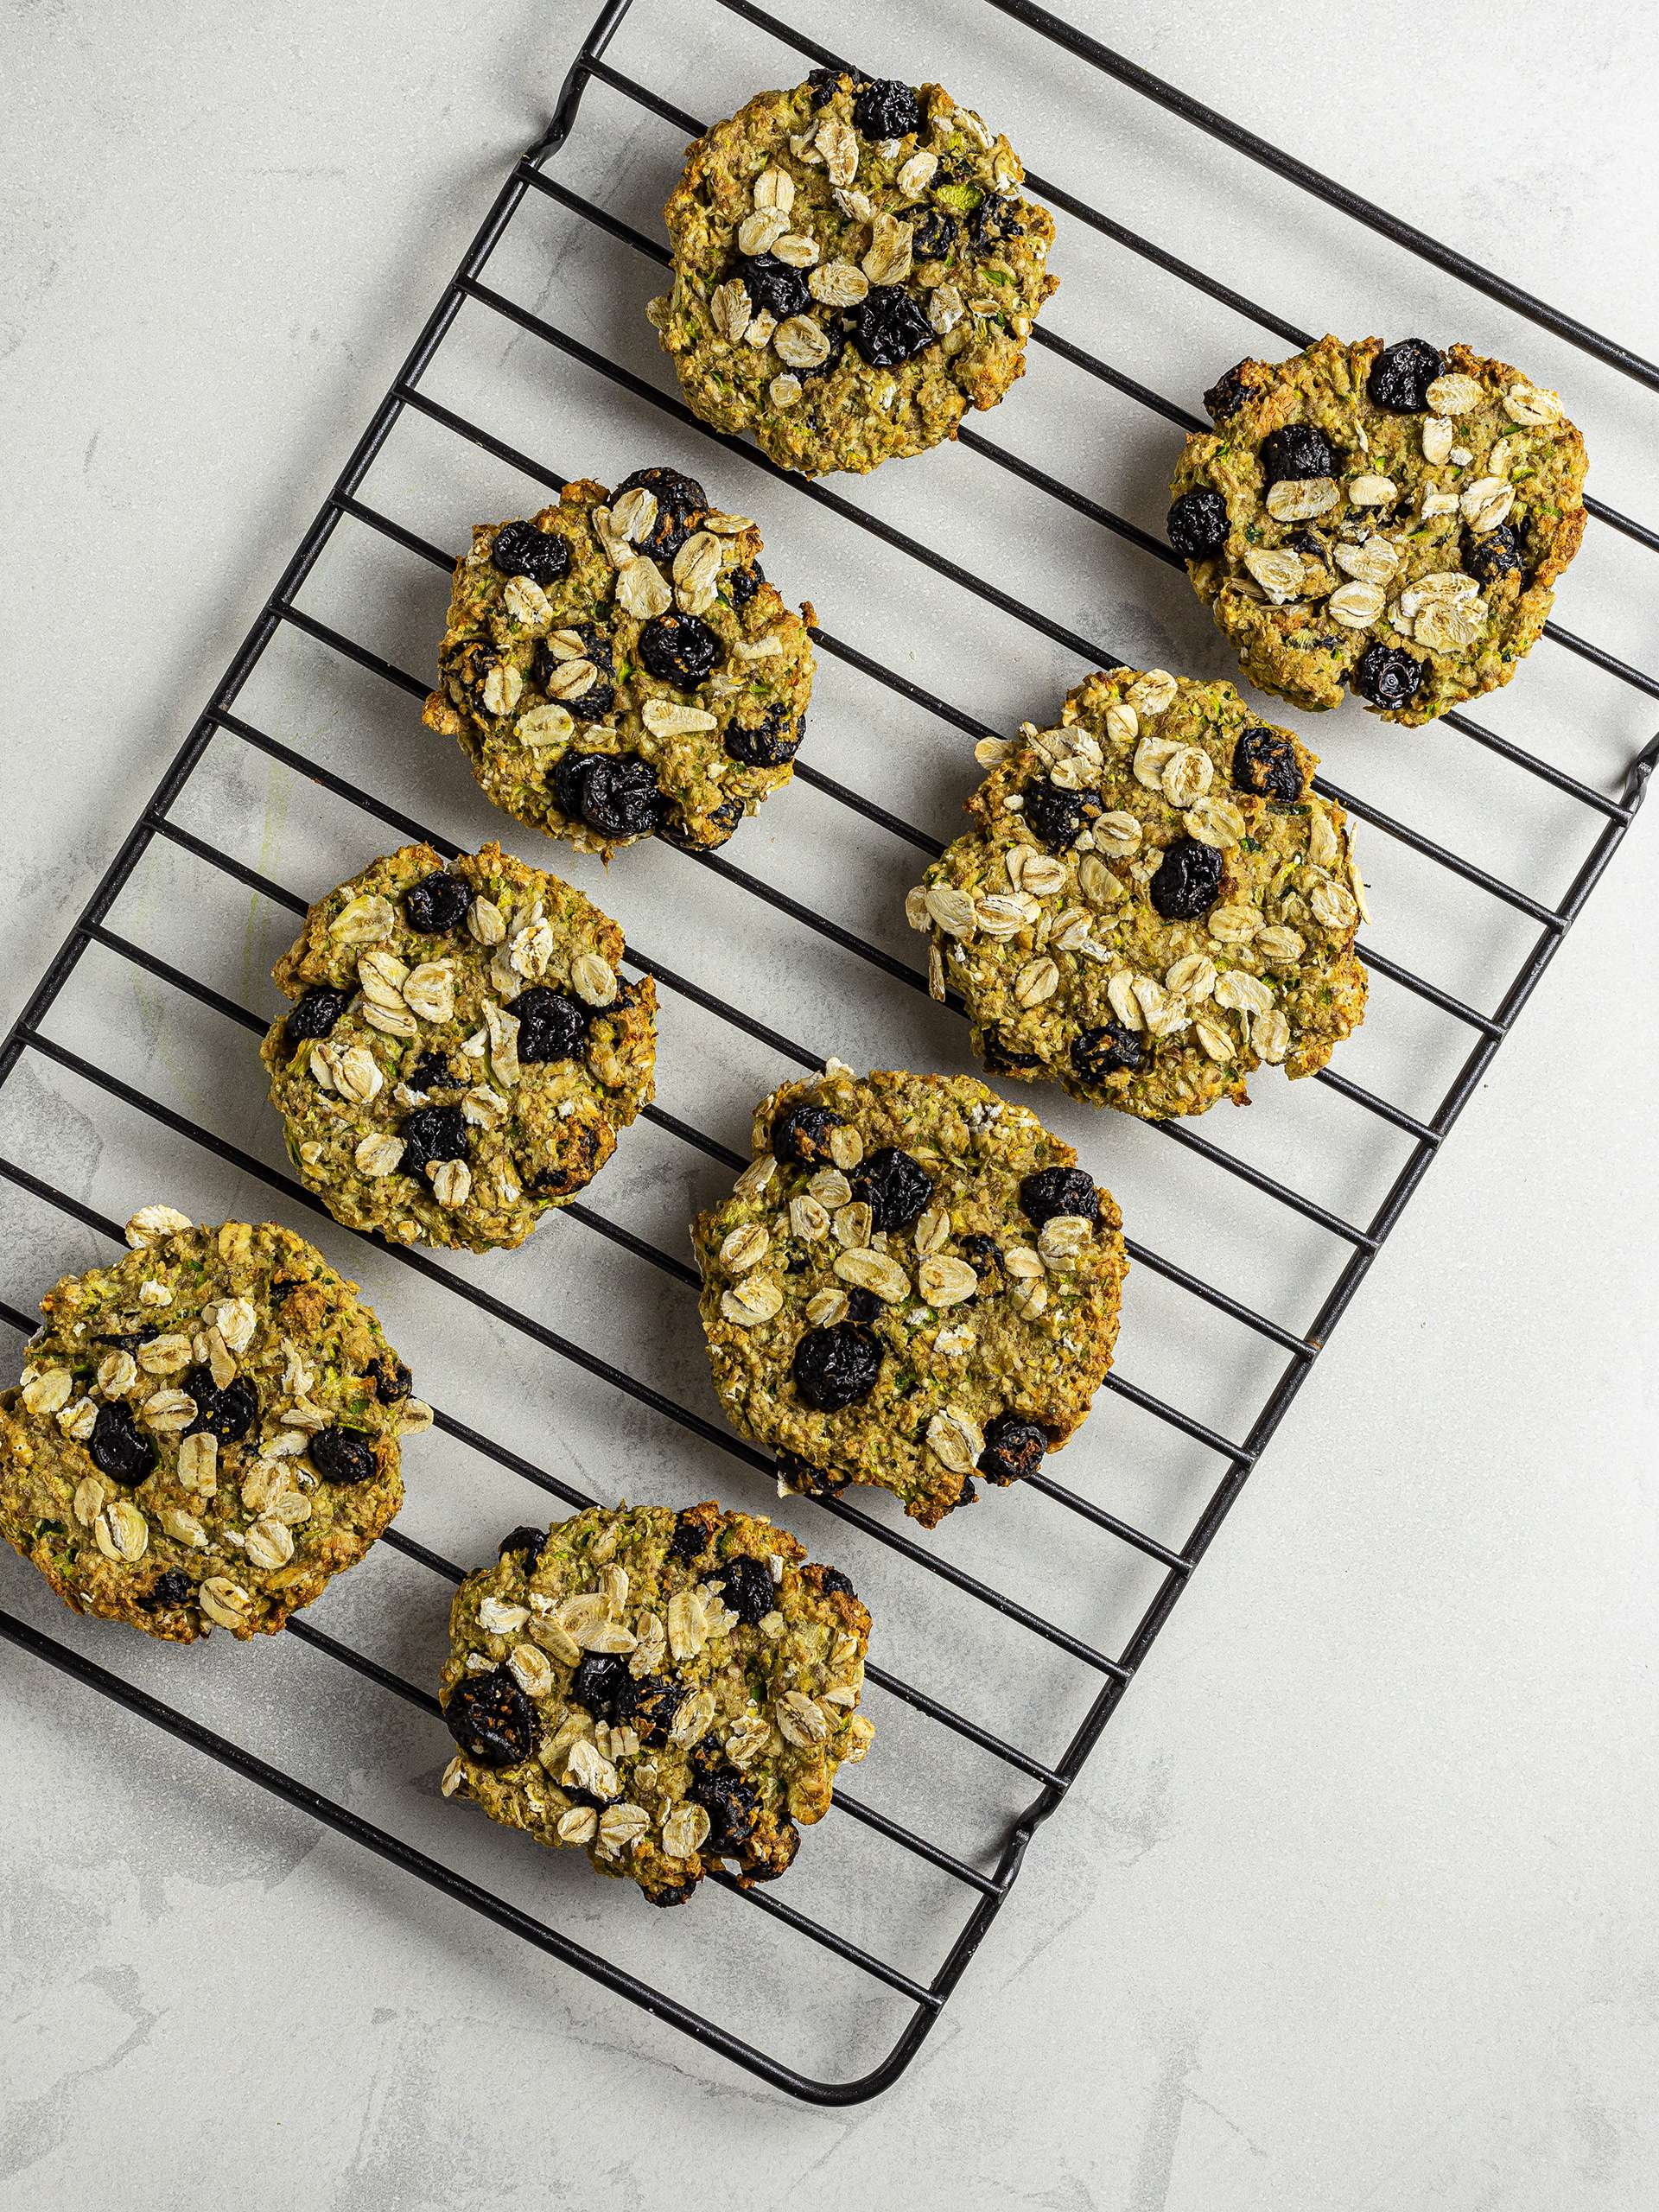 Baked zucchini cookies on a wire rack